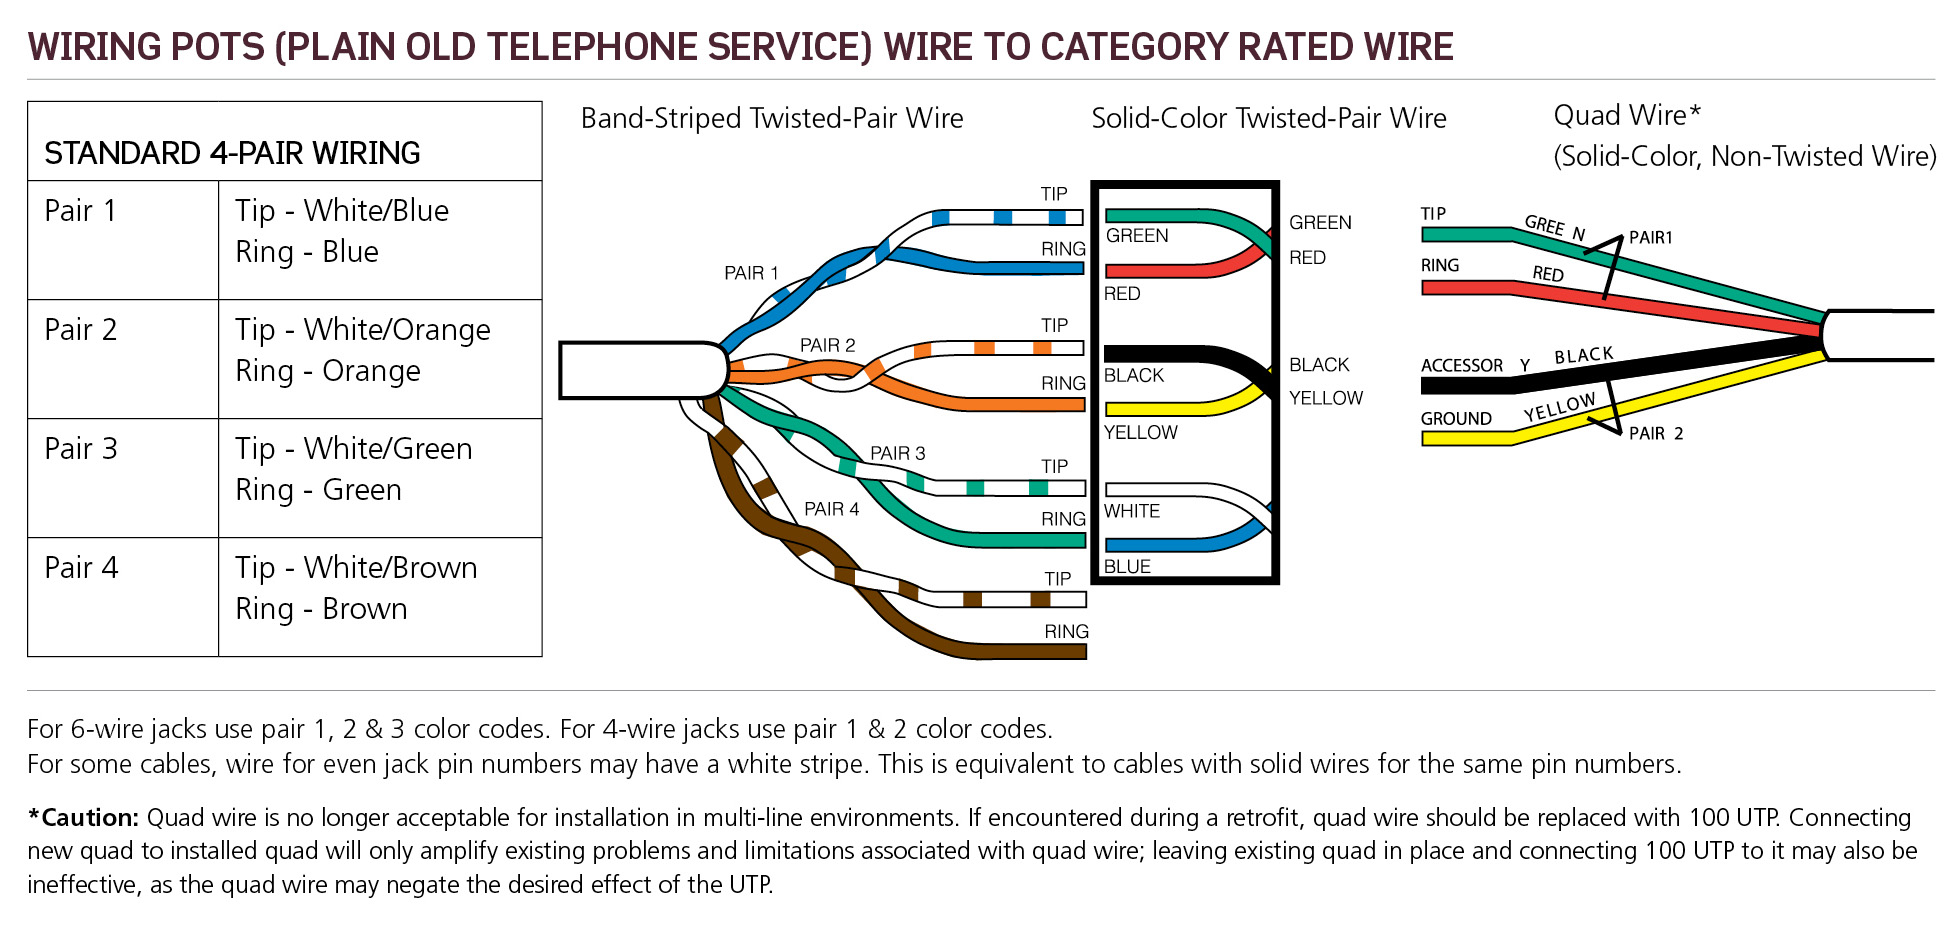 pots plain old telephone service wiring leviton made easy blog wiring diagram pole service service wiring diagram #49